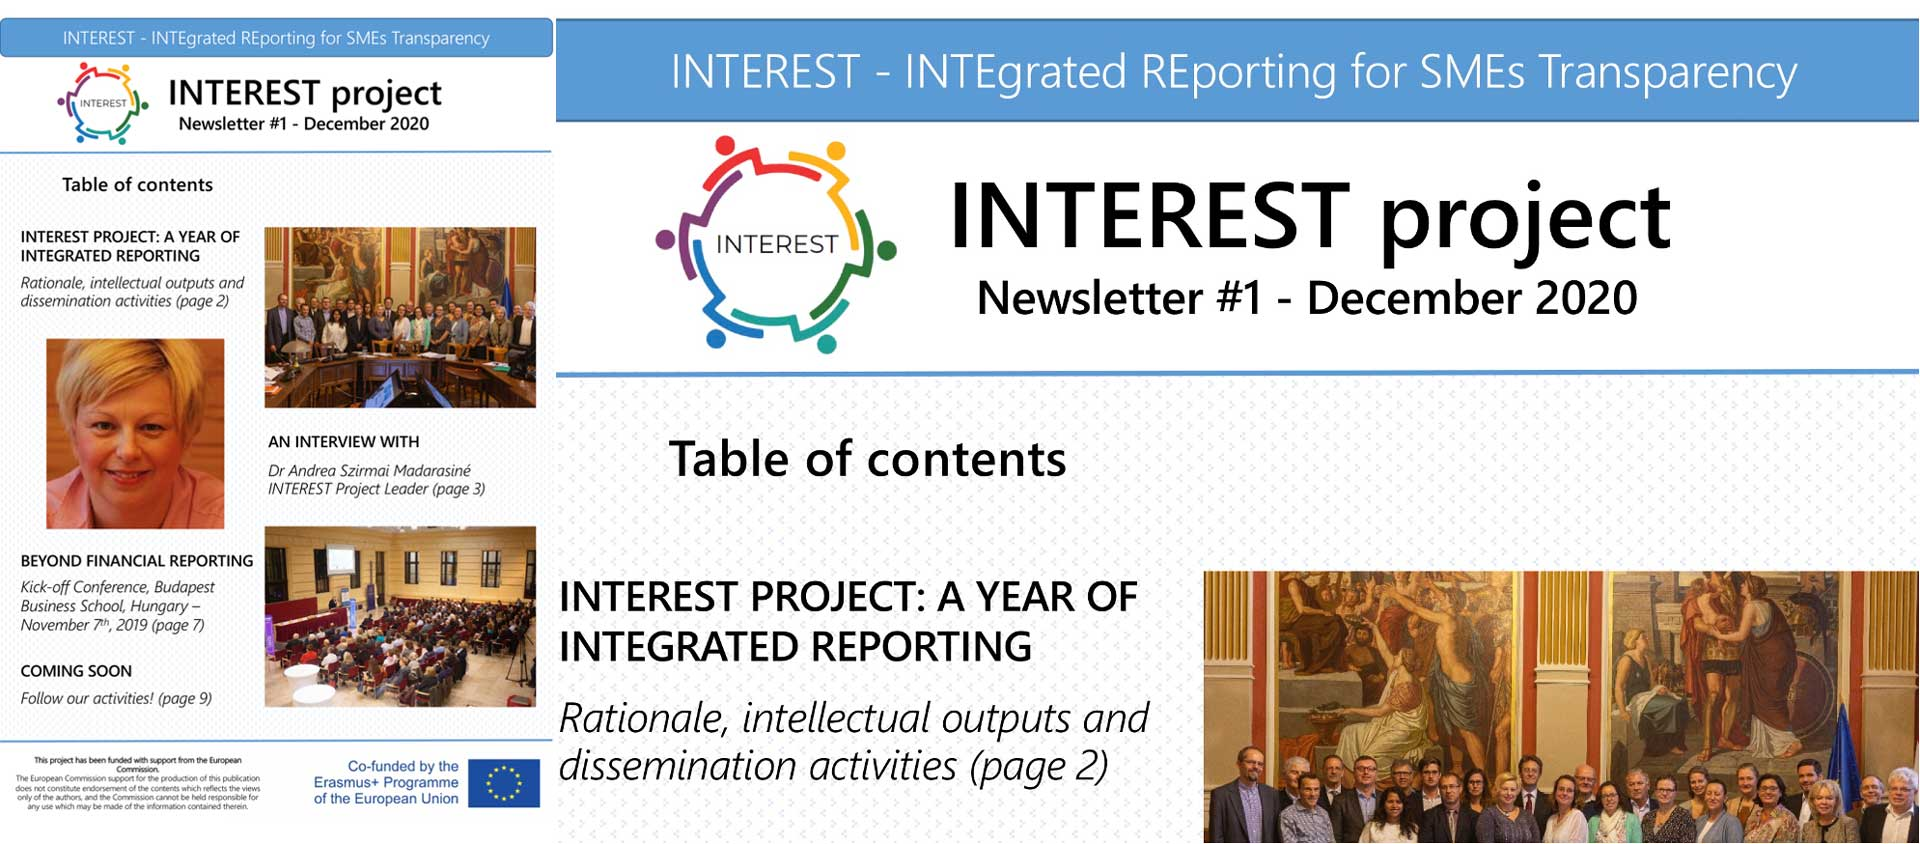 INTEREST Newsletter 01 - Dec 2020